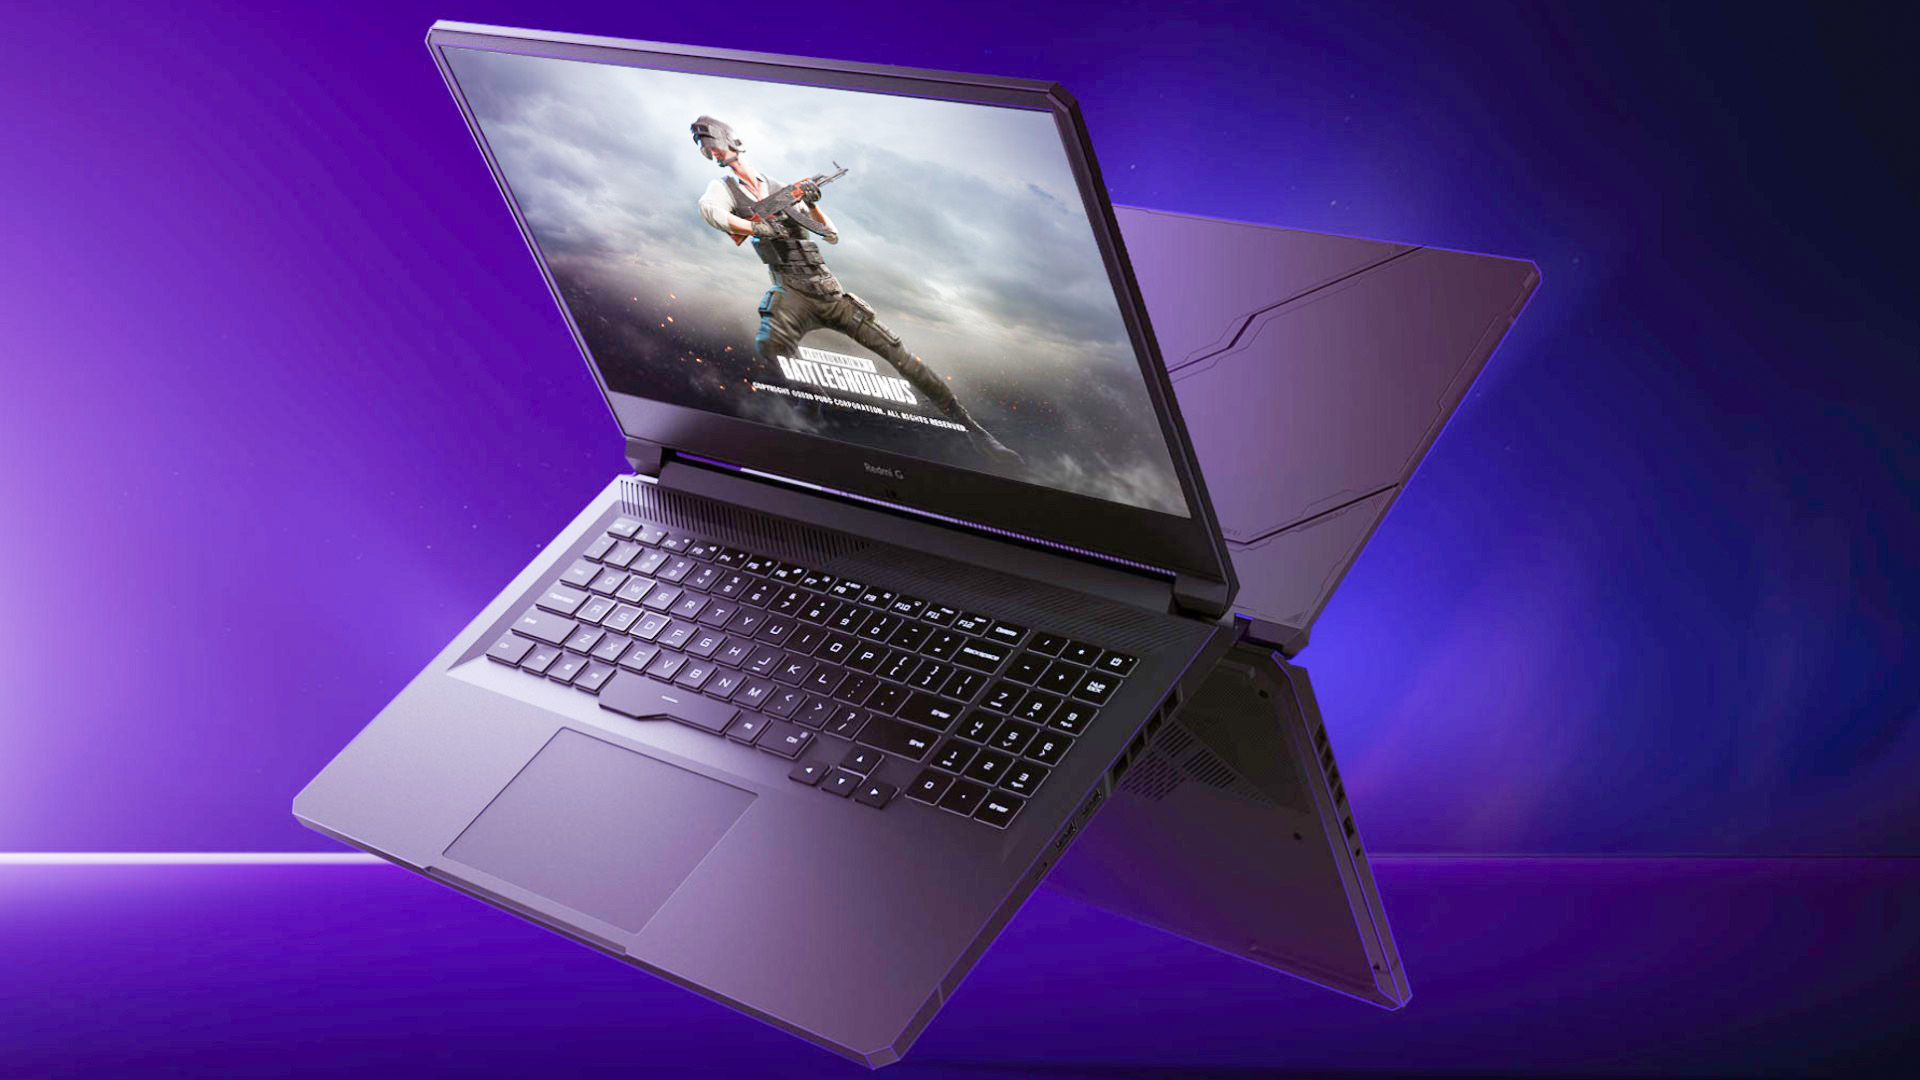 Redmi G gaming laptop released with 144Hz display